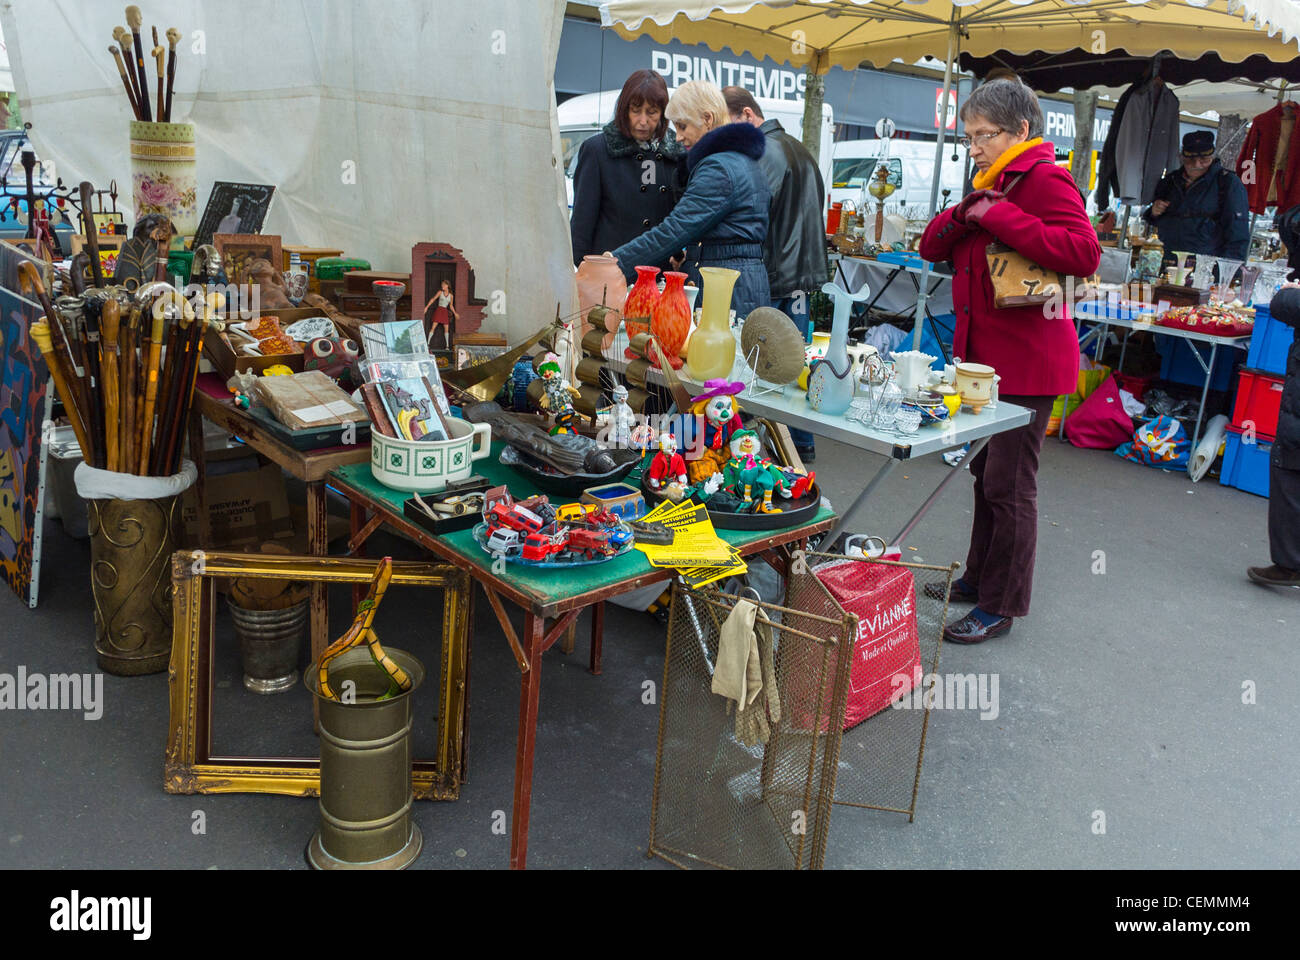 Brocante Cours De Vincennes Adults Brocante City Life Stock Photos Adults Brocante City Life